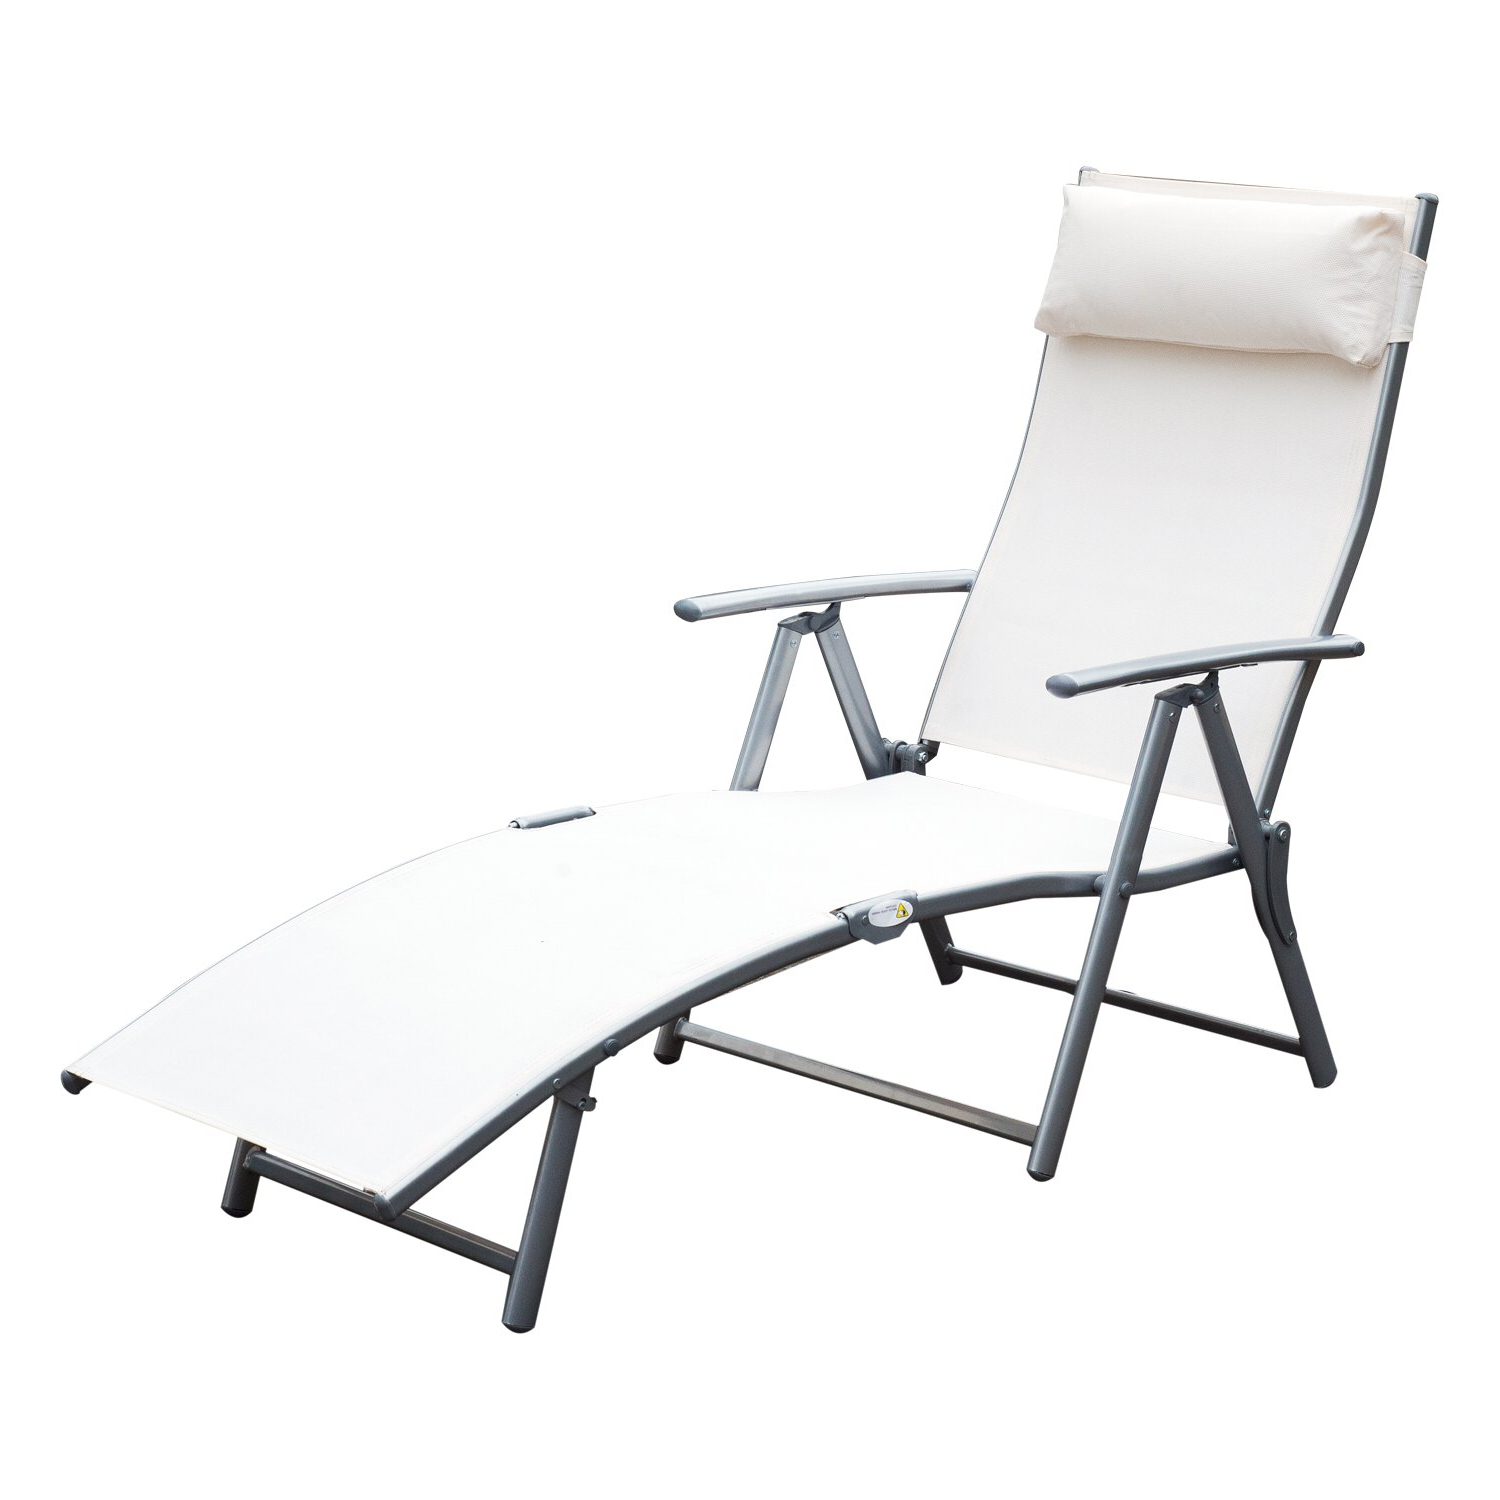 Popular Fabric Reclining Outdoor Chaise Lounges Intended For Outsunny Sling Fabric Patio Reclining Chaise Lounge Chair Folding 5  Position Adjustable Outdoor Deck With Cushion – Cream White (Gallery 5 of 25)